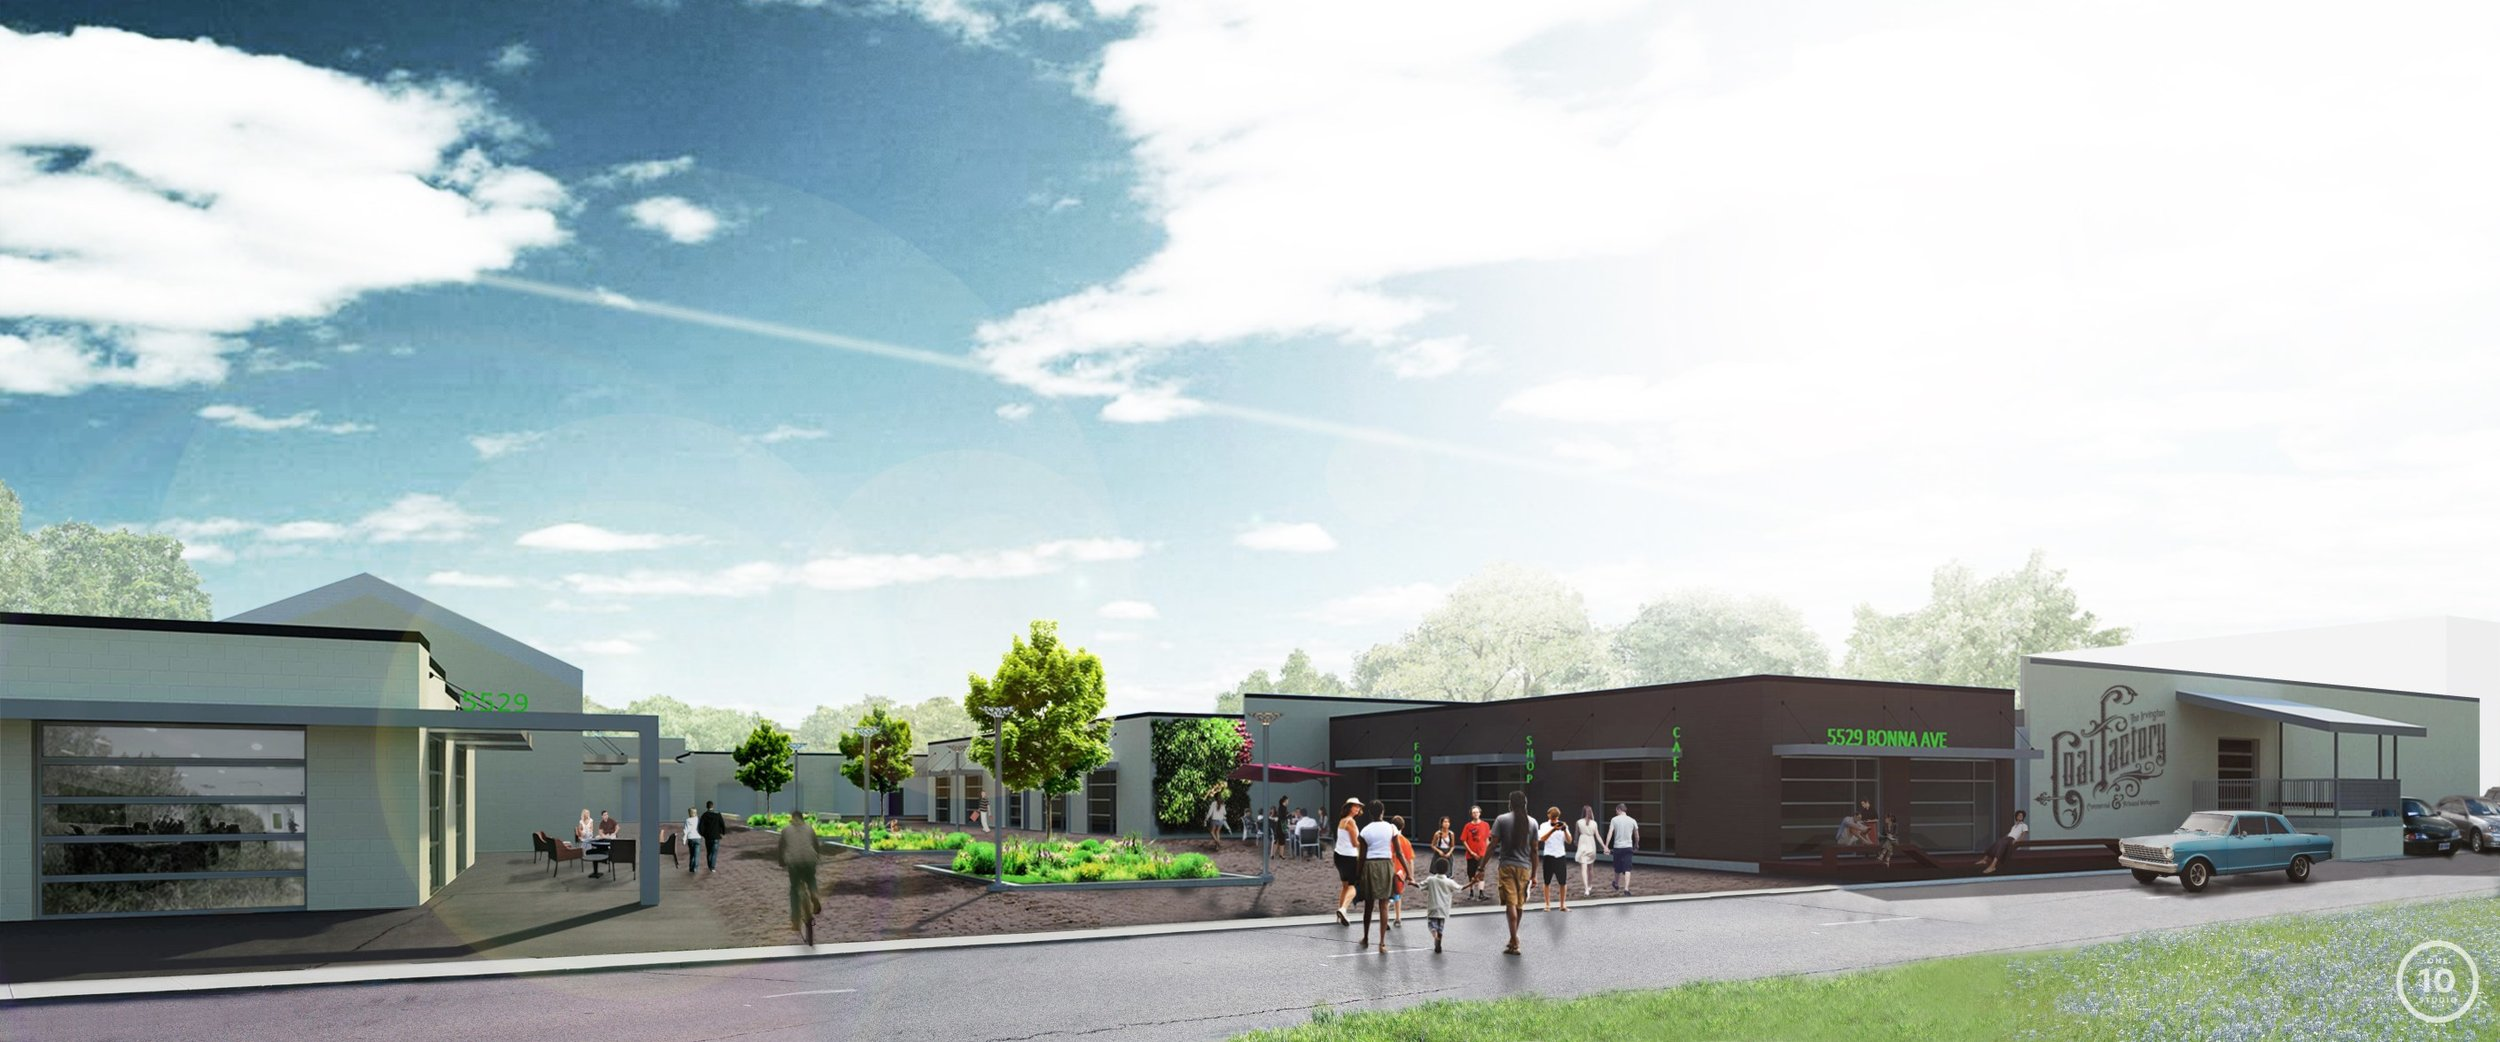 Redevelopment plans for our old facility on Bonna Ave. in Irvington.